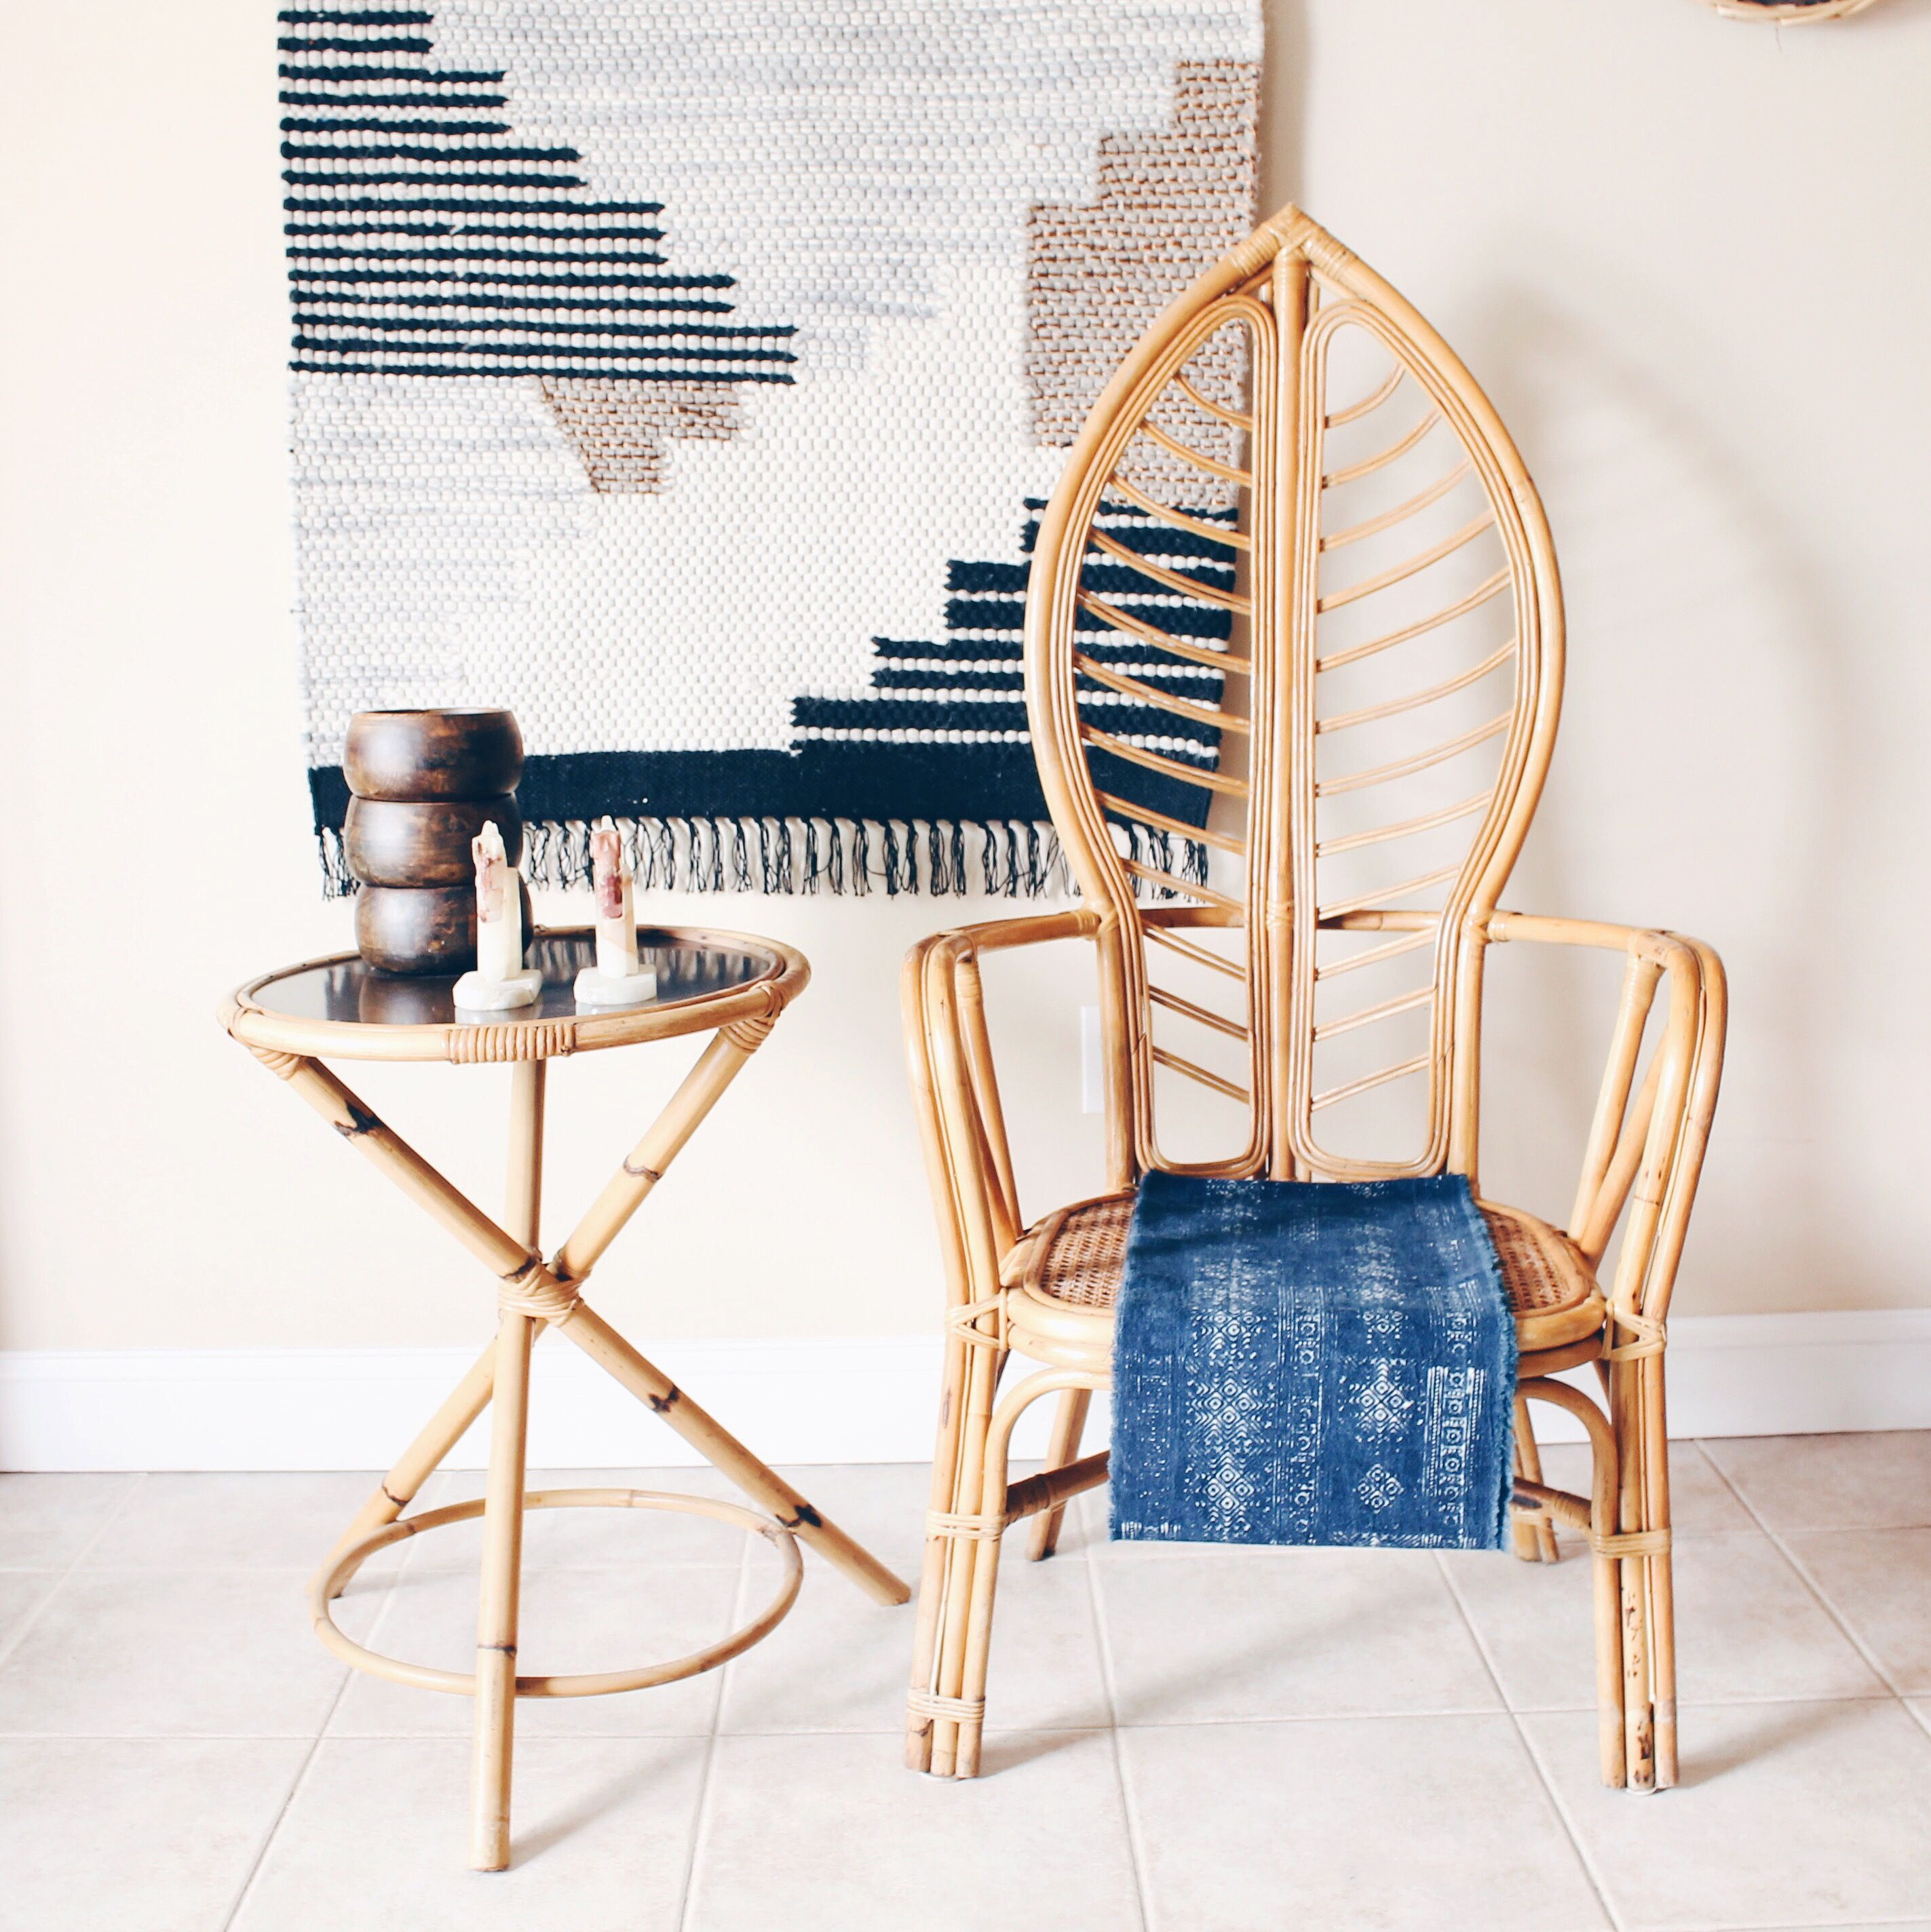 Bamboo arm chairs - Rattan Leaf Shaped Throne Chairs With Caned Seat High Back Chair Vintage Rattan Arm